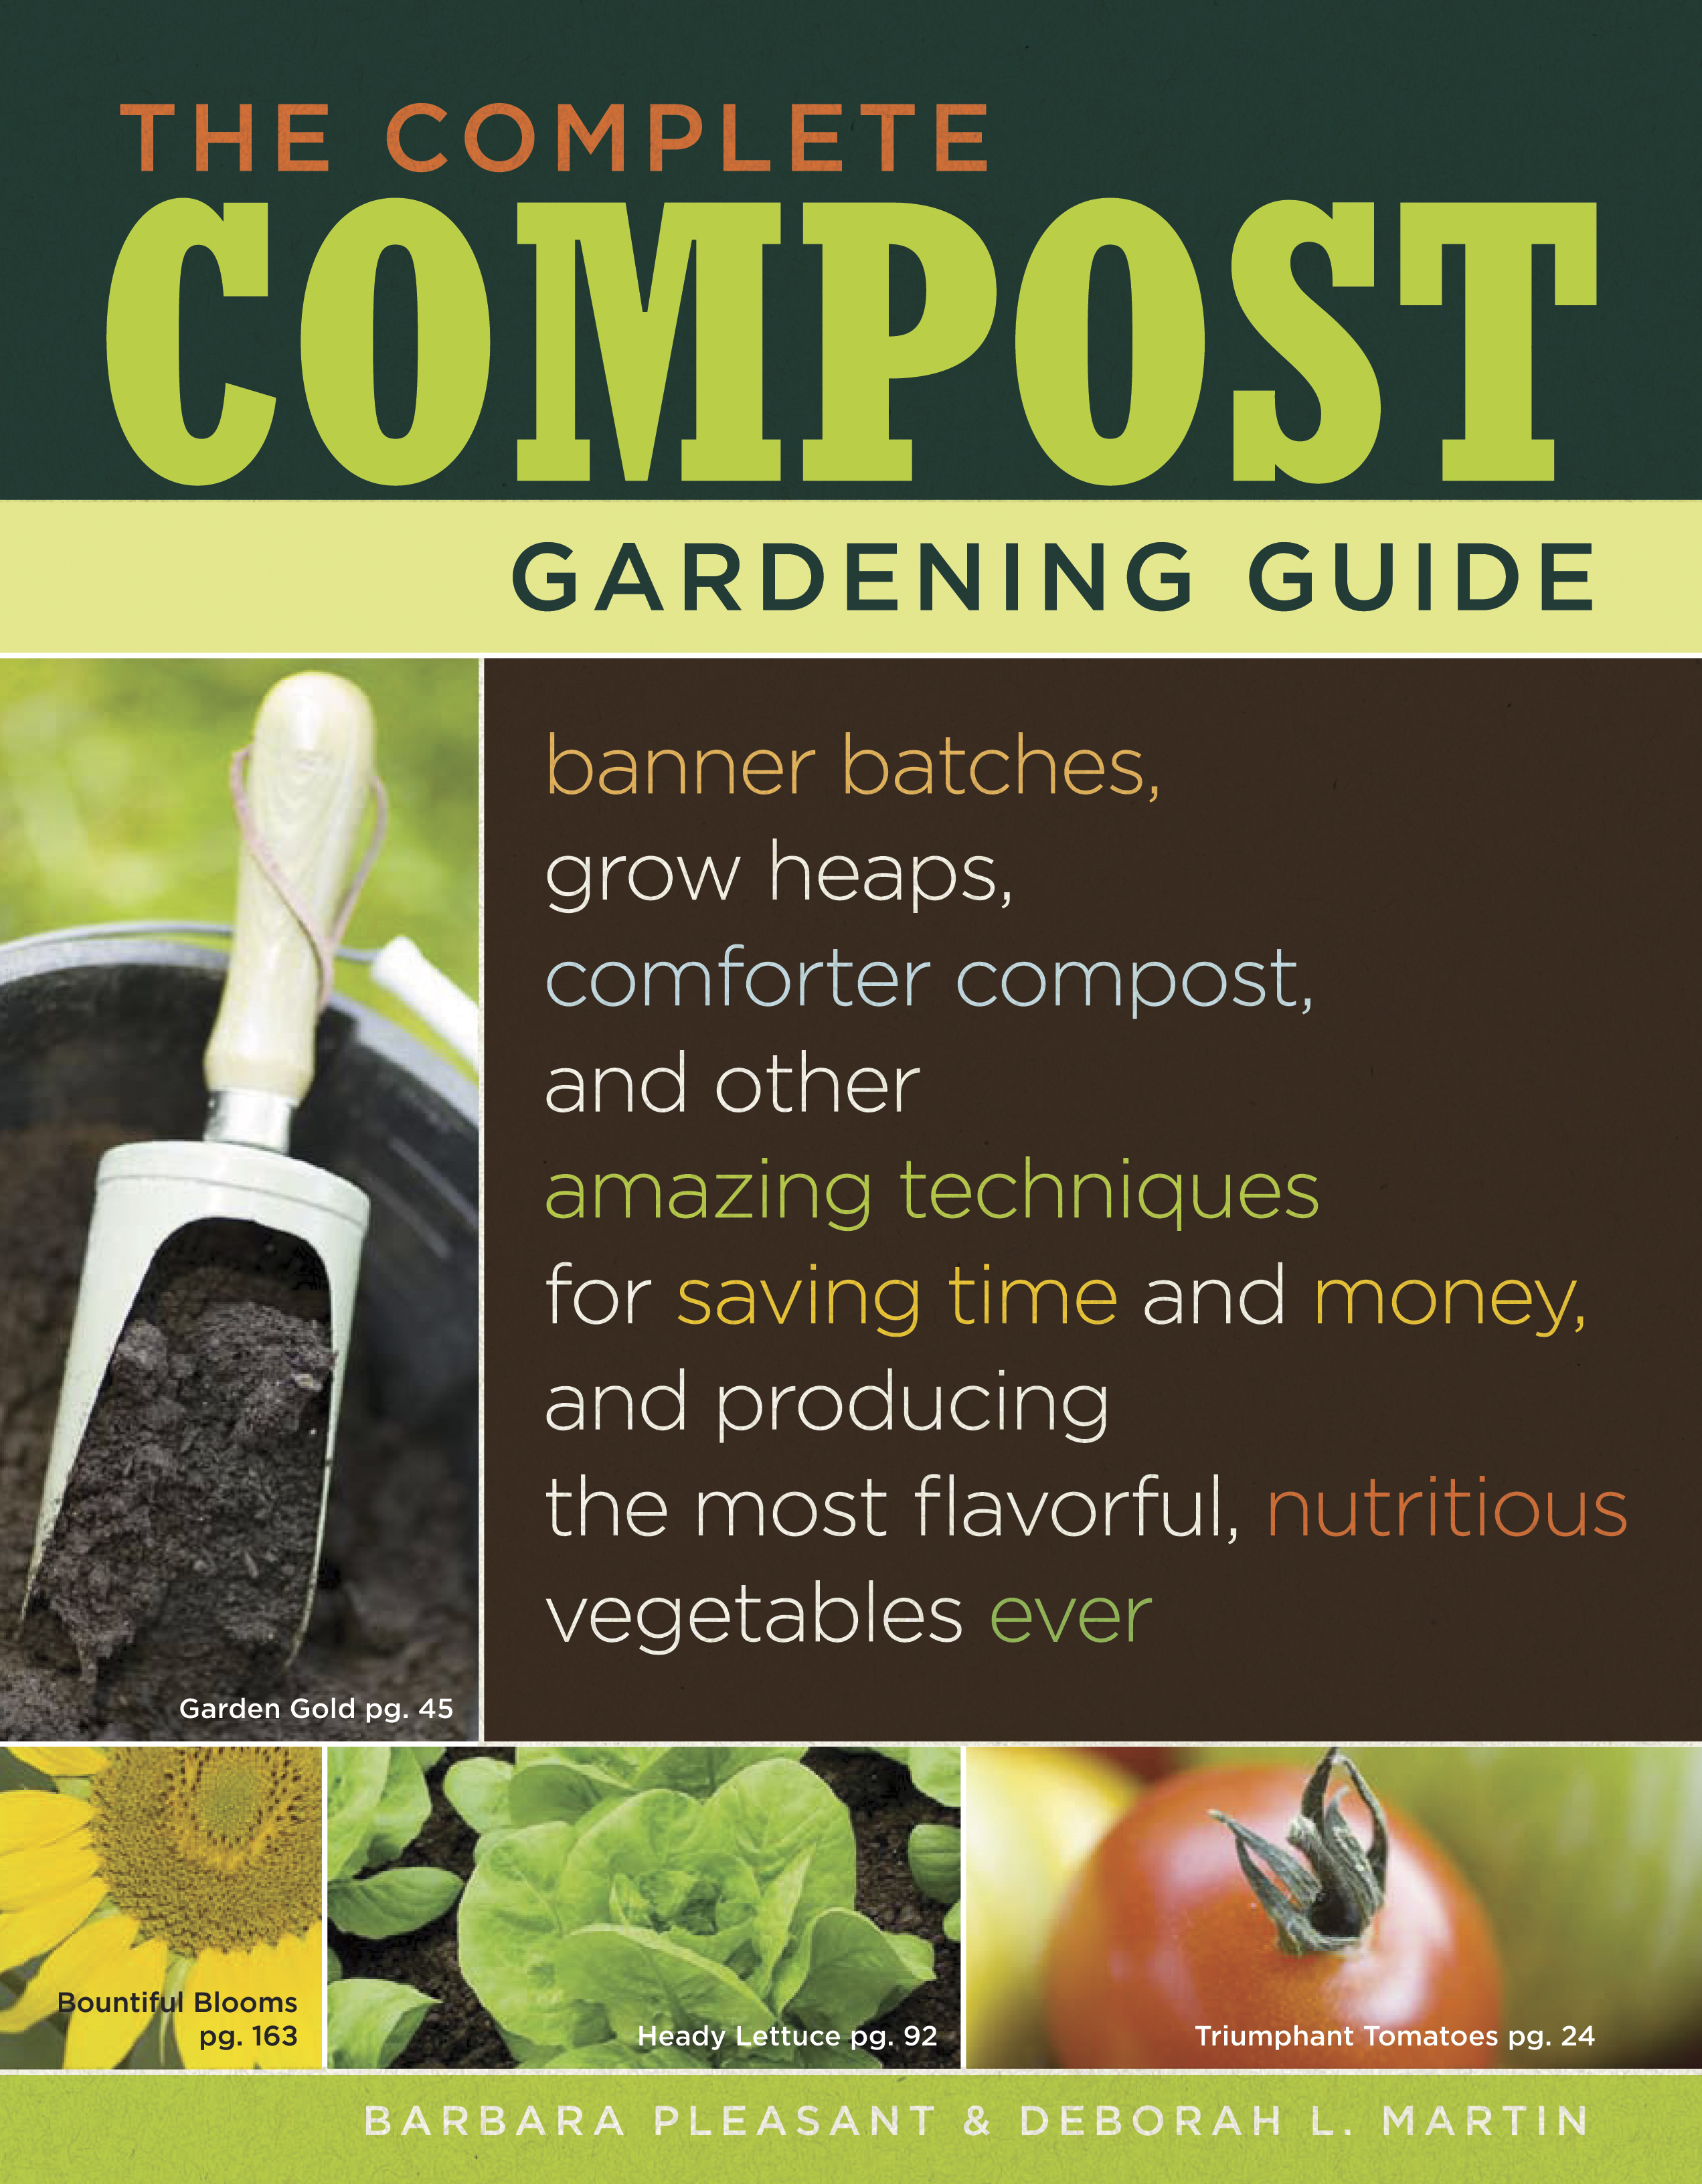 The Complete Compost Gardening Guide Banner batches, grow heaps, comforter compost, and other amazing techniques for saving time and money, and producing the most flavorful, nutritous vegetables ever. - Deborah L. Martin